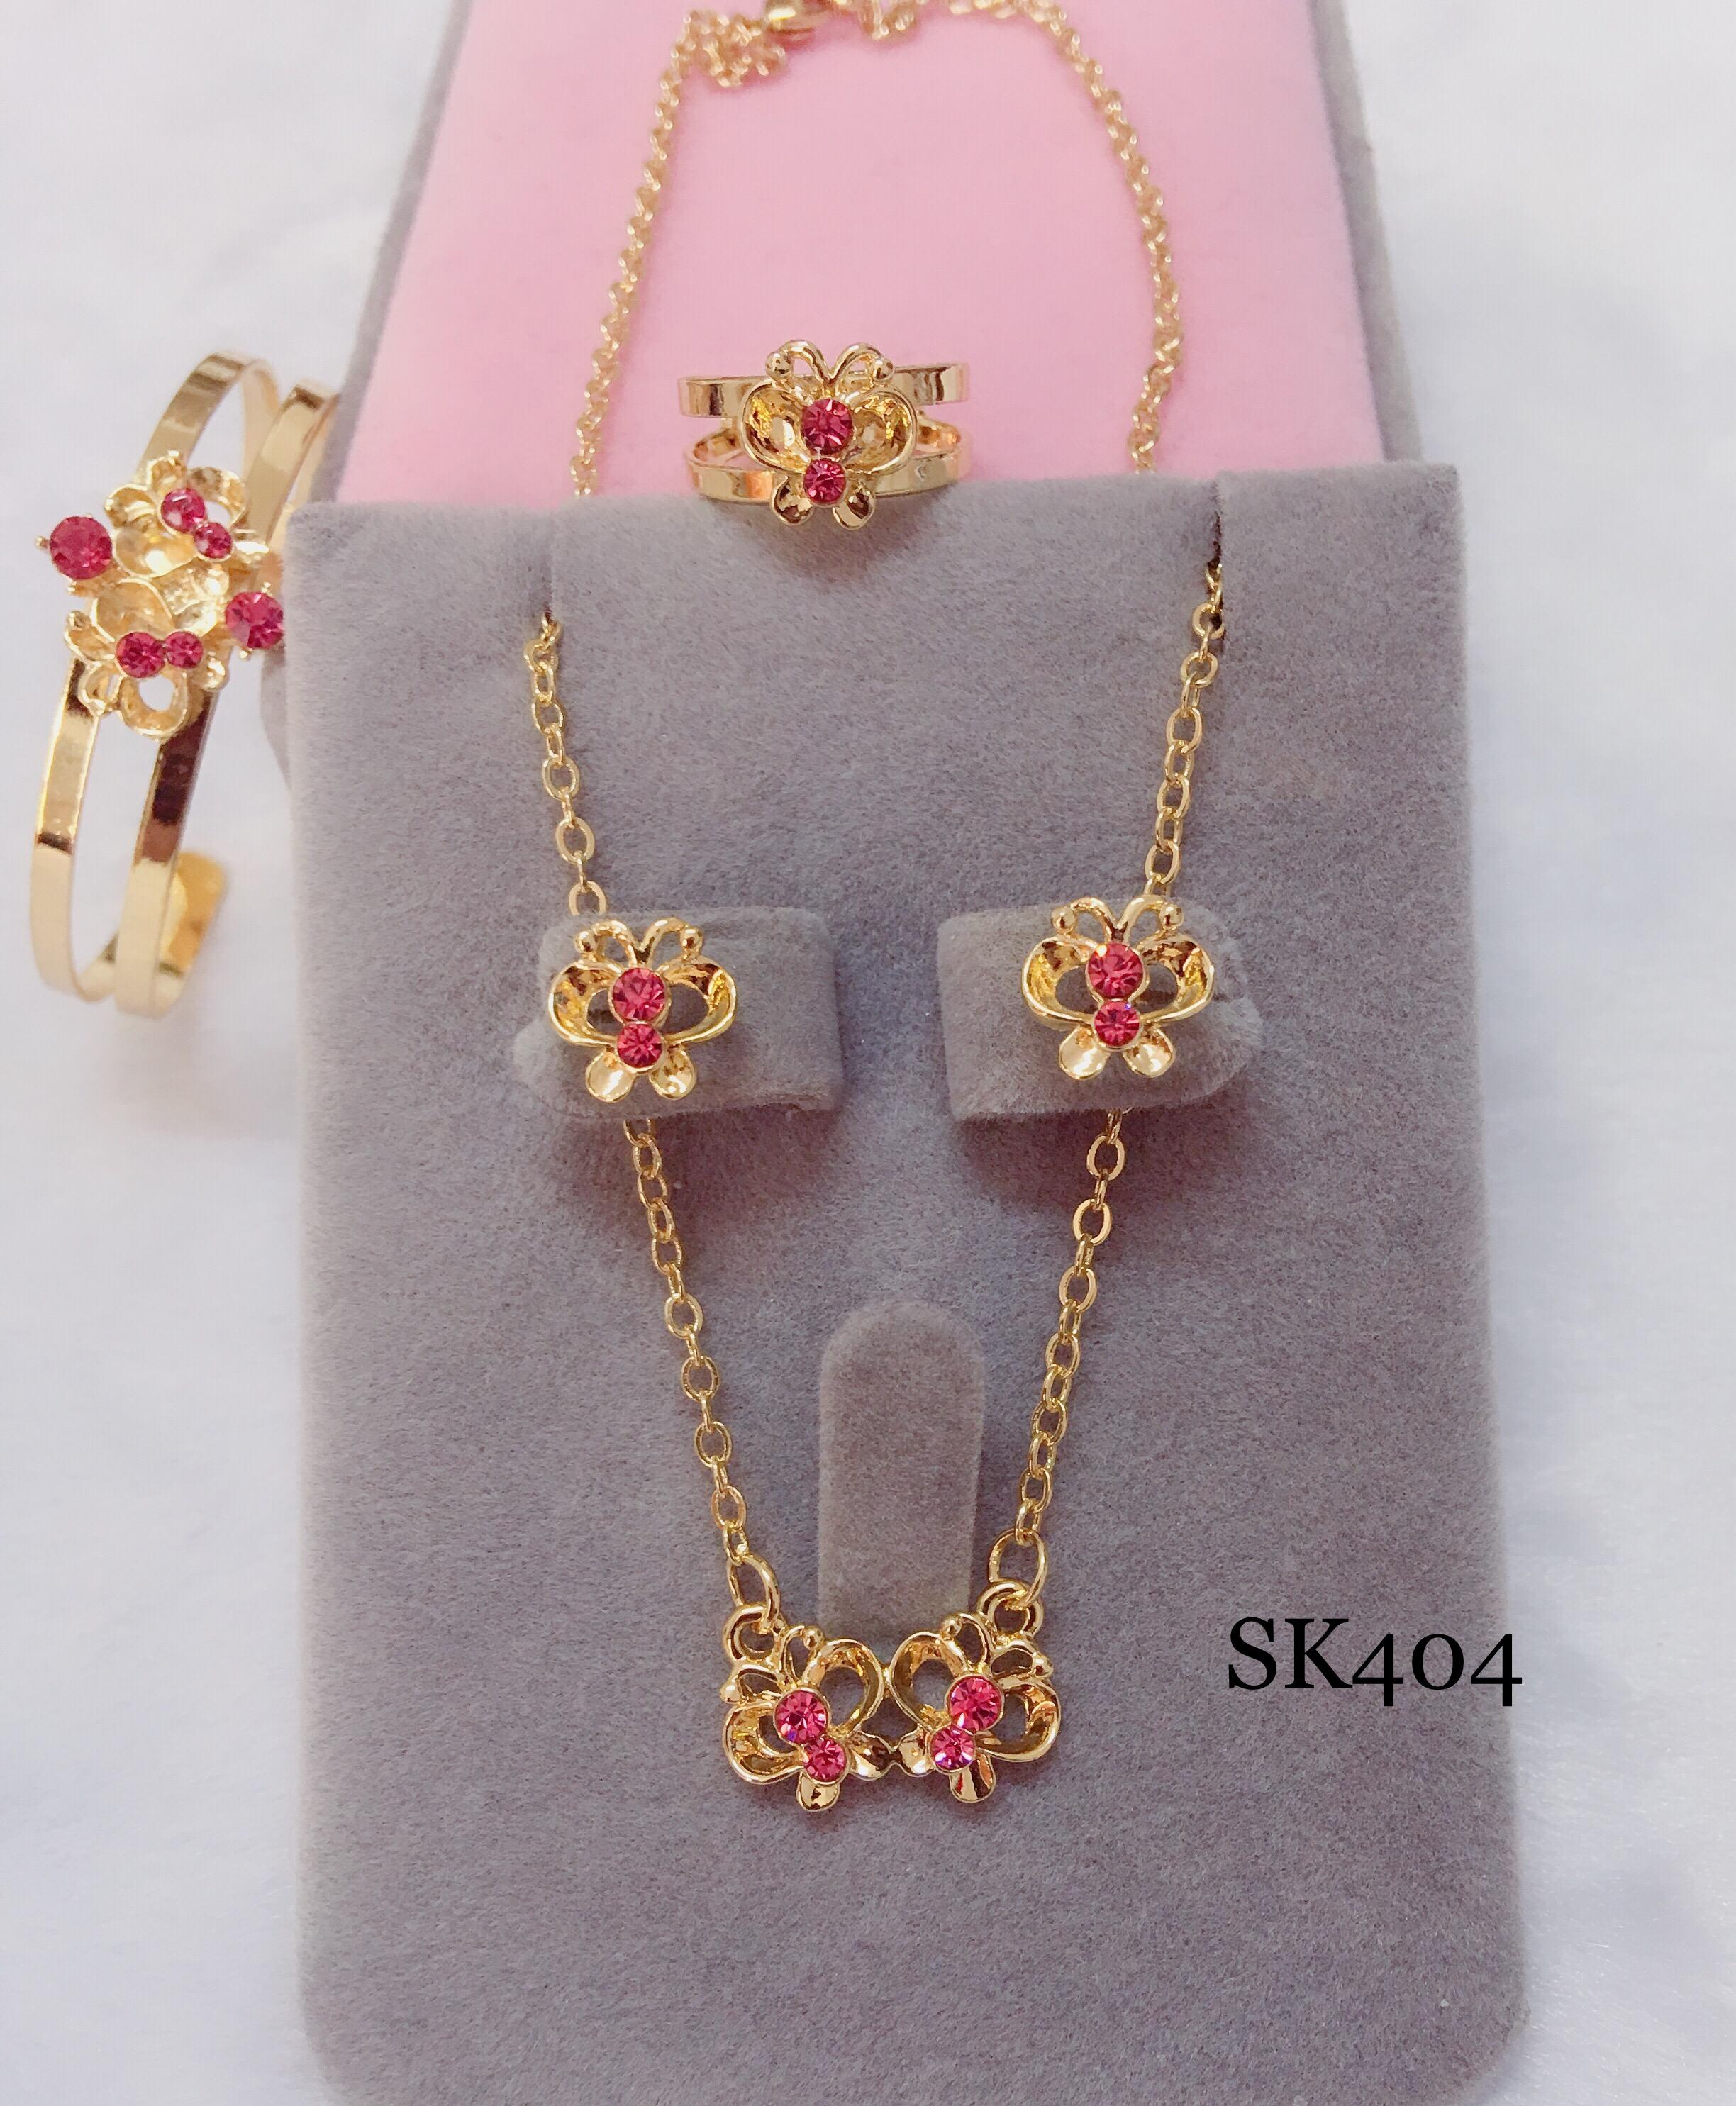 Sk404 18k Rose Gold Butterfly 4 In 1 Set For Kids By Miss M Shop.